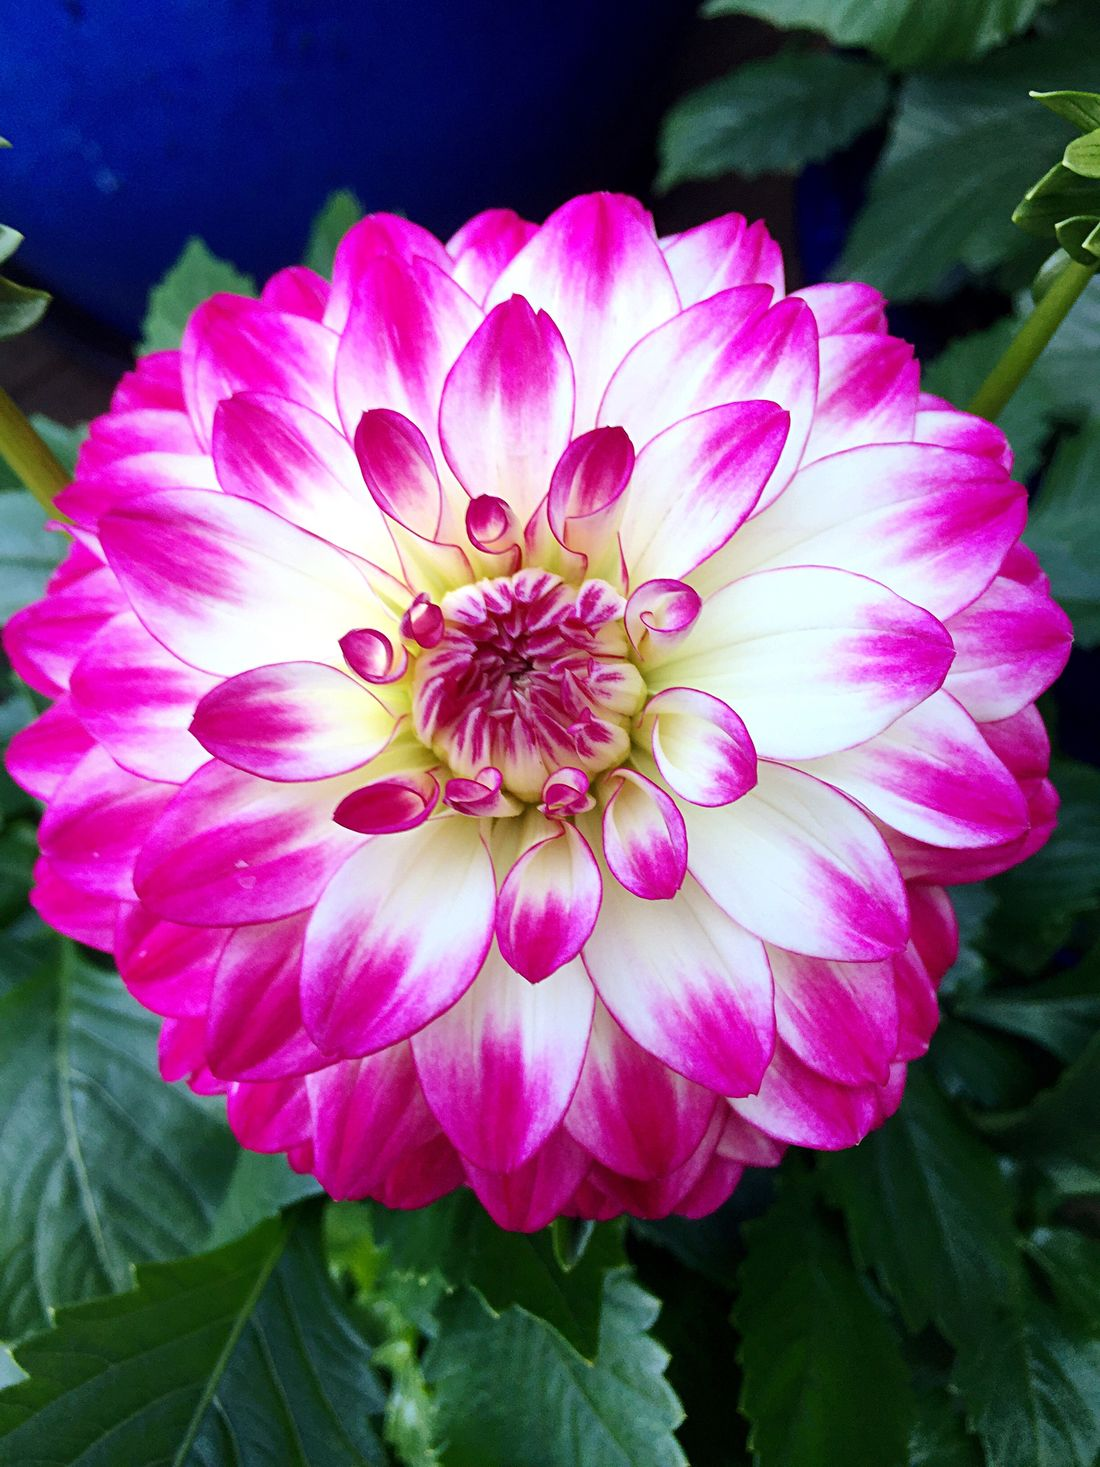 Flower Petal Fragility Beauty In Nature Nature Freshness Blooming Growth Flower Head Plant Close-up Pink Color Outdoors No People Day Zinnia  Georgin Georginafleur